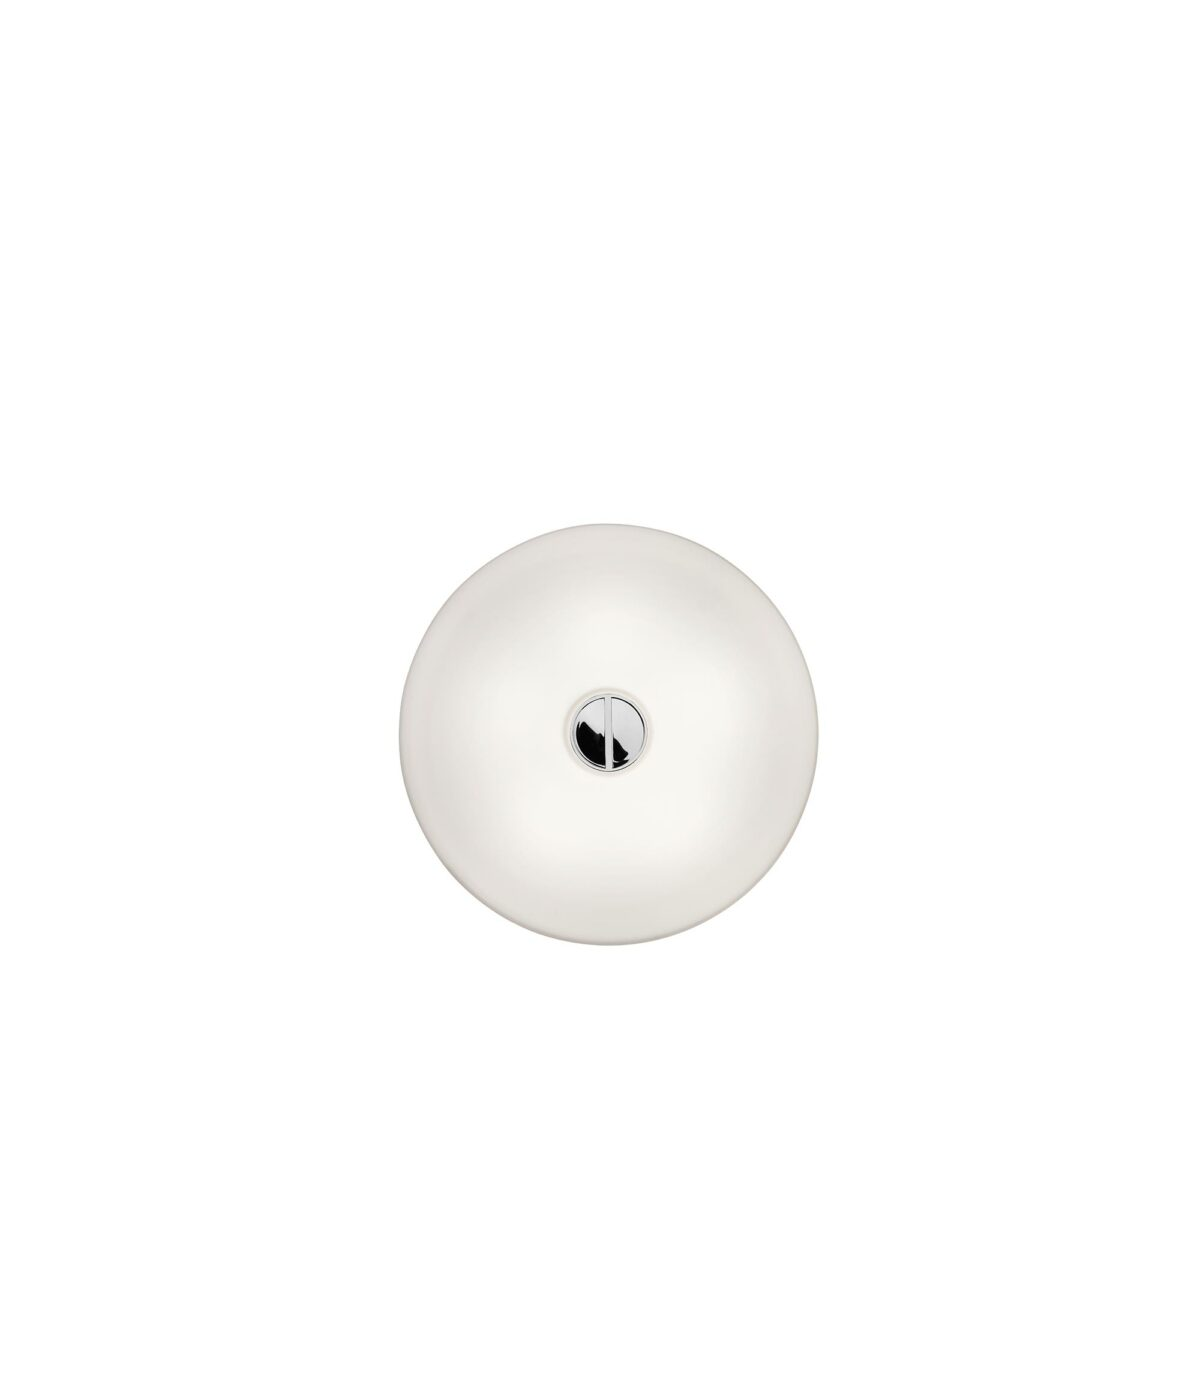 button ceiling wall lissoni flos F3190009 product still life big 1